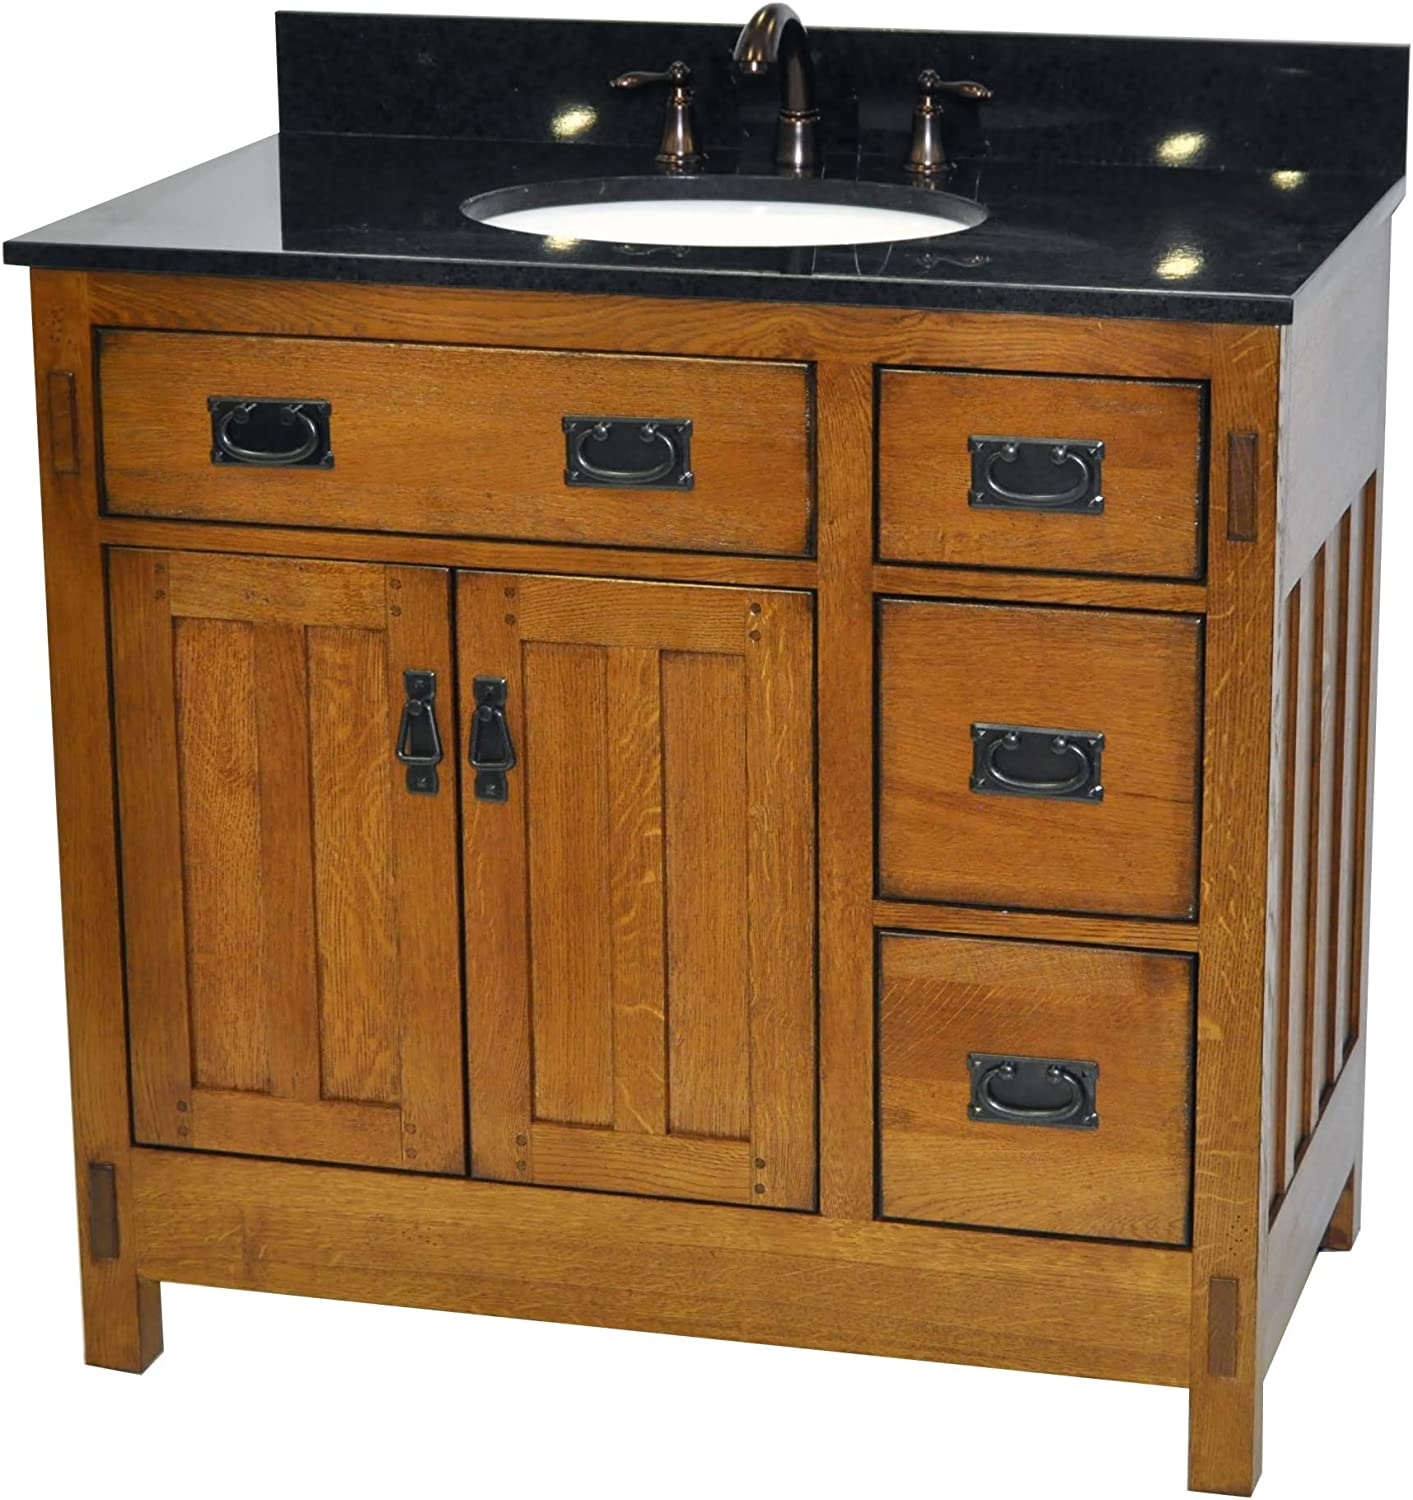 Sagehill Designs American Craftsman 36 Inch Bathroom Vanity Base Rustic Oak Finish Amazon Com